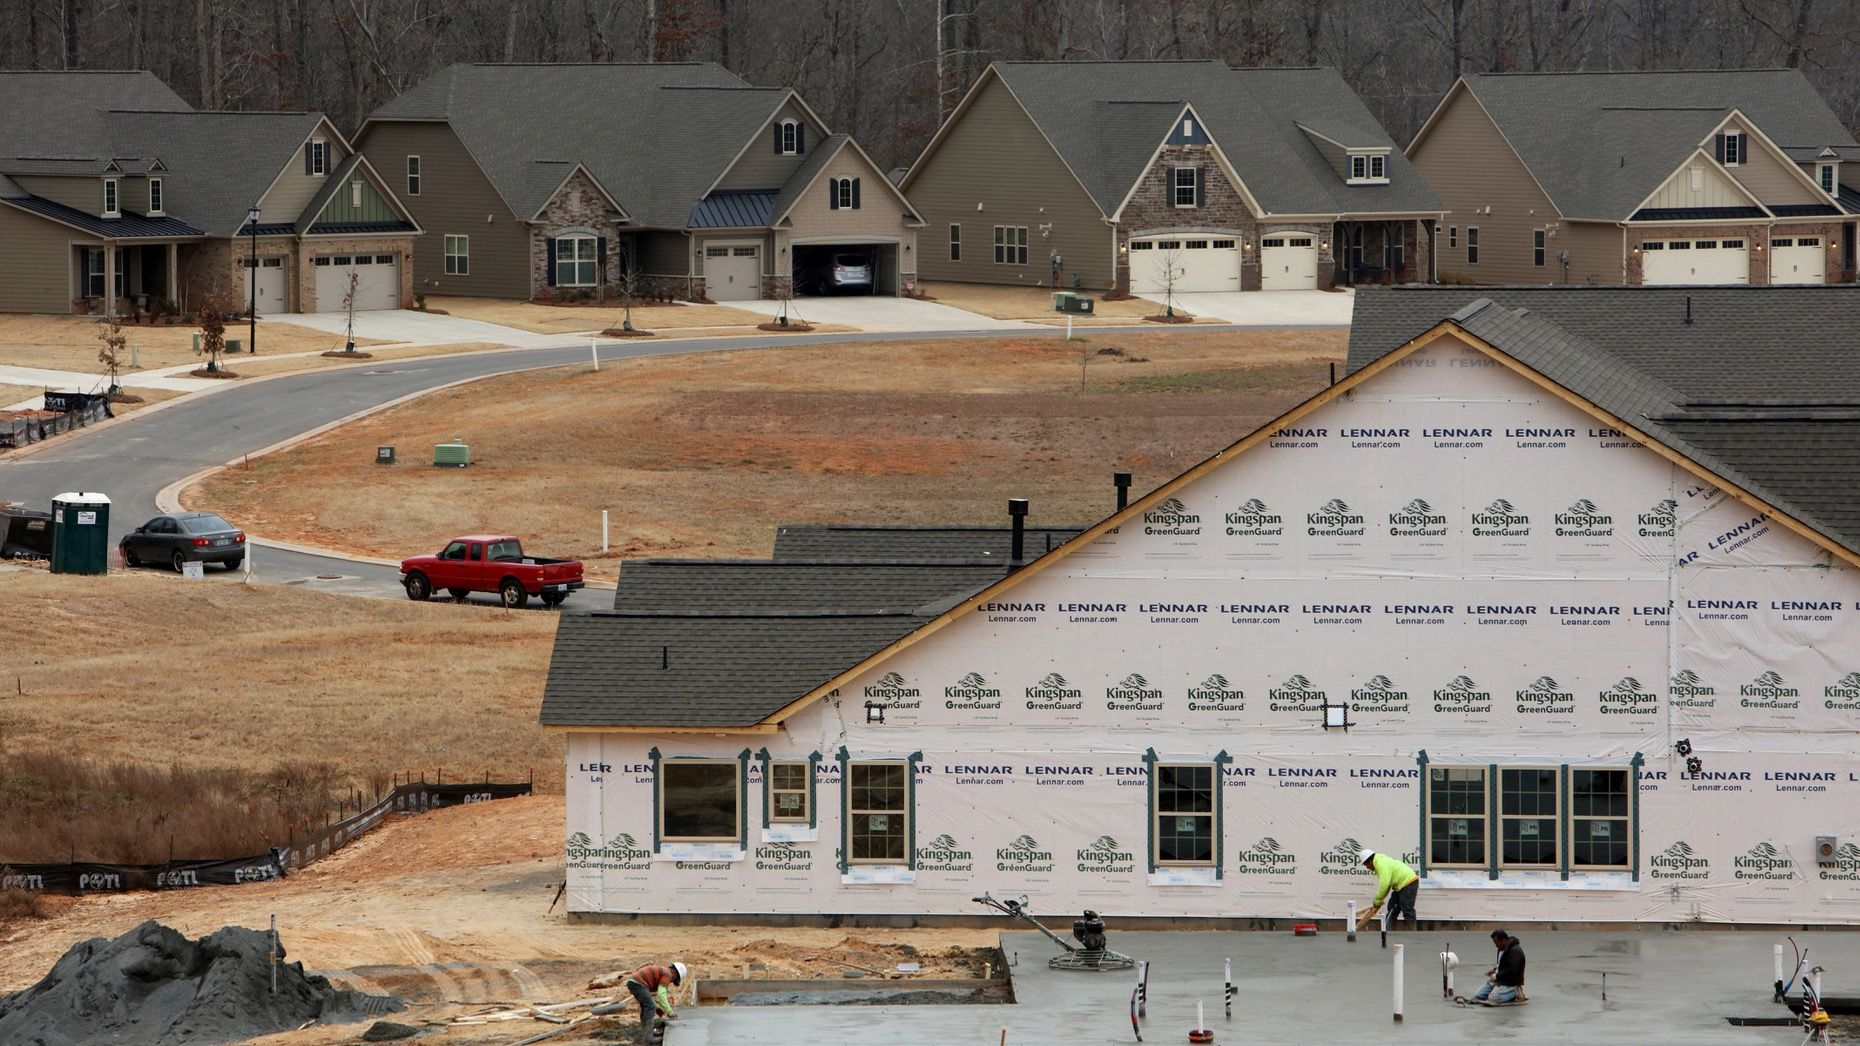 Contractors worked on a house under construction at the Lennar Tree Tops community development in Lancaster, S.C. Photo: Bloomberg